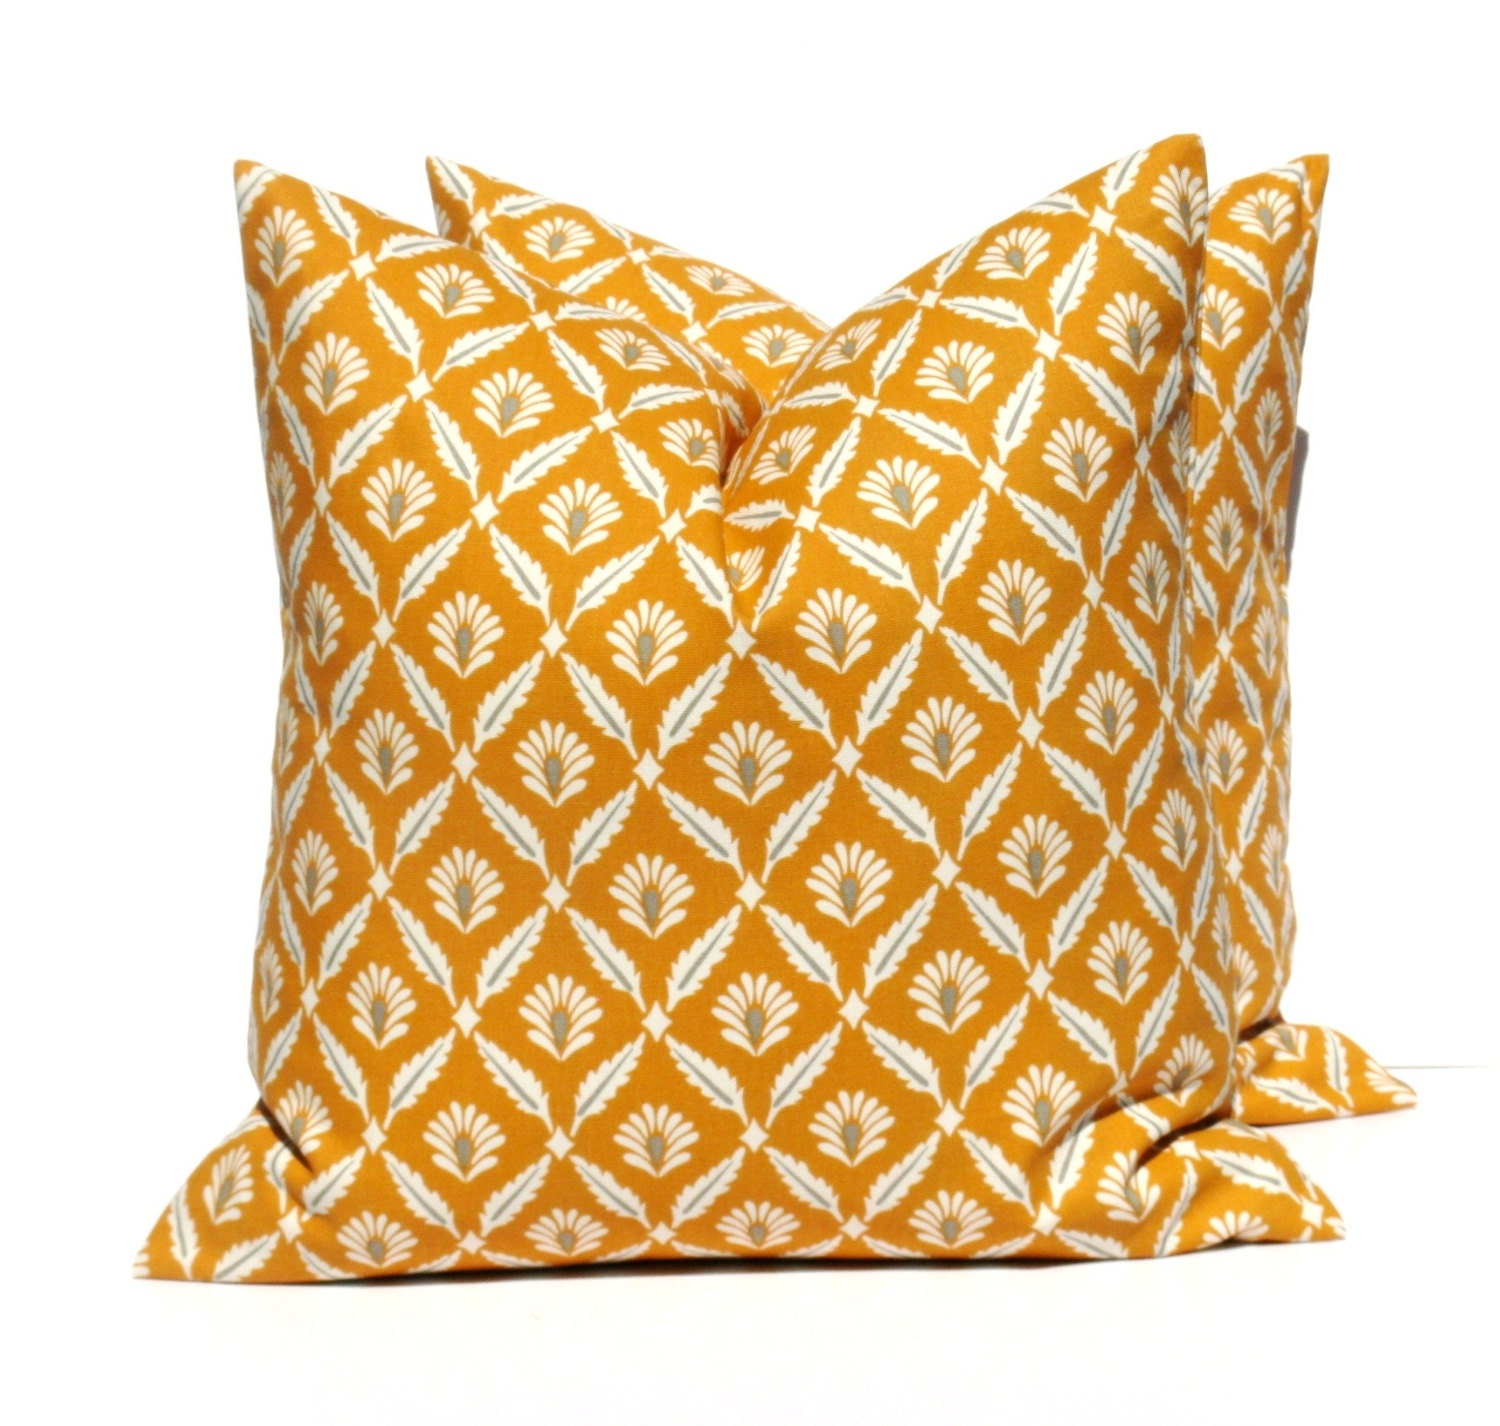 Throw Pillow Covers 20x20 : 20x20 Throw Pillow Covers Orange Pillow Orange by EastAndNest